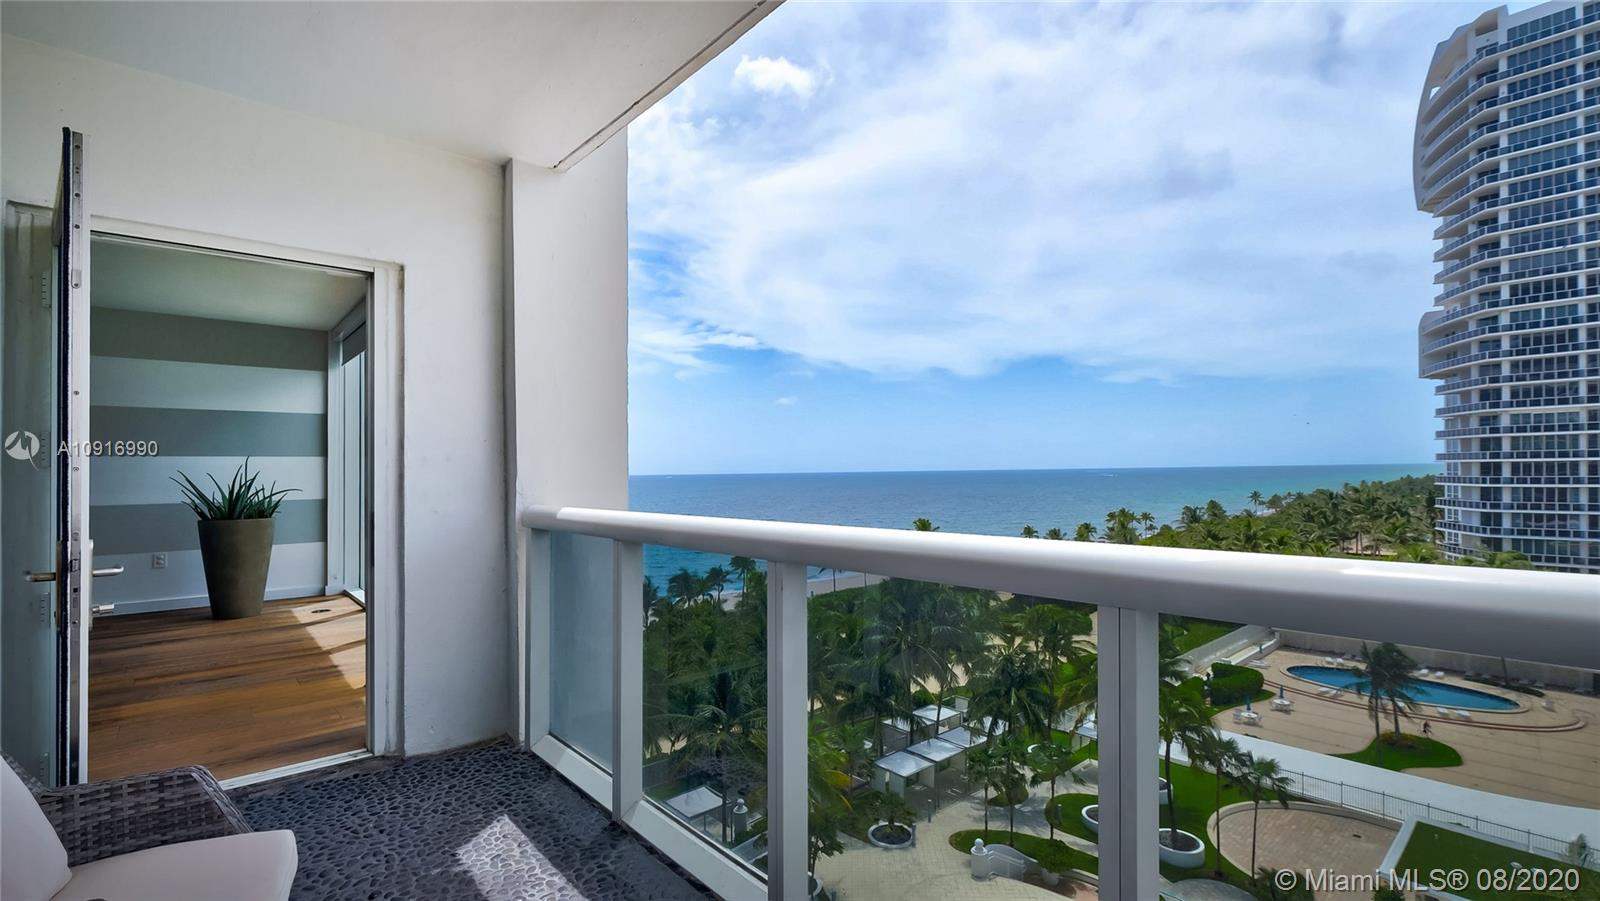 10275  Collins Ave #711 For Sale A10916990, FL